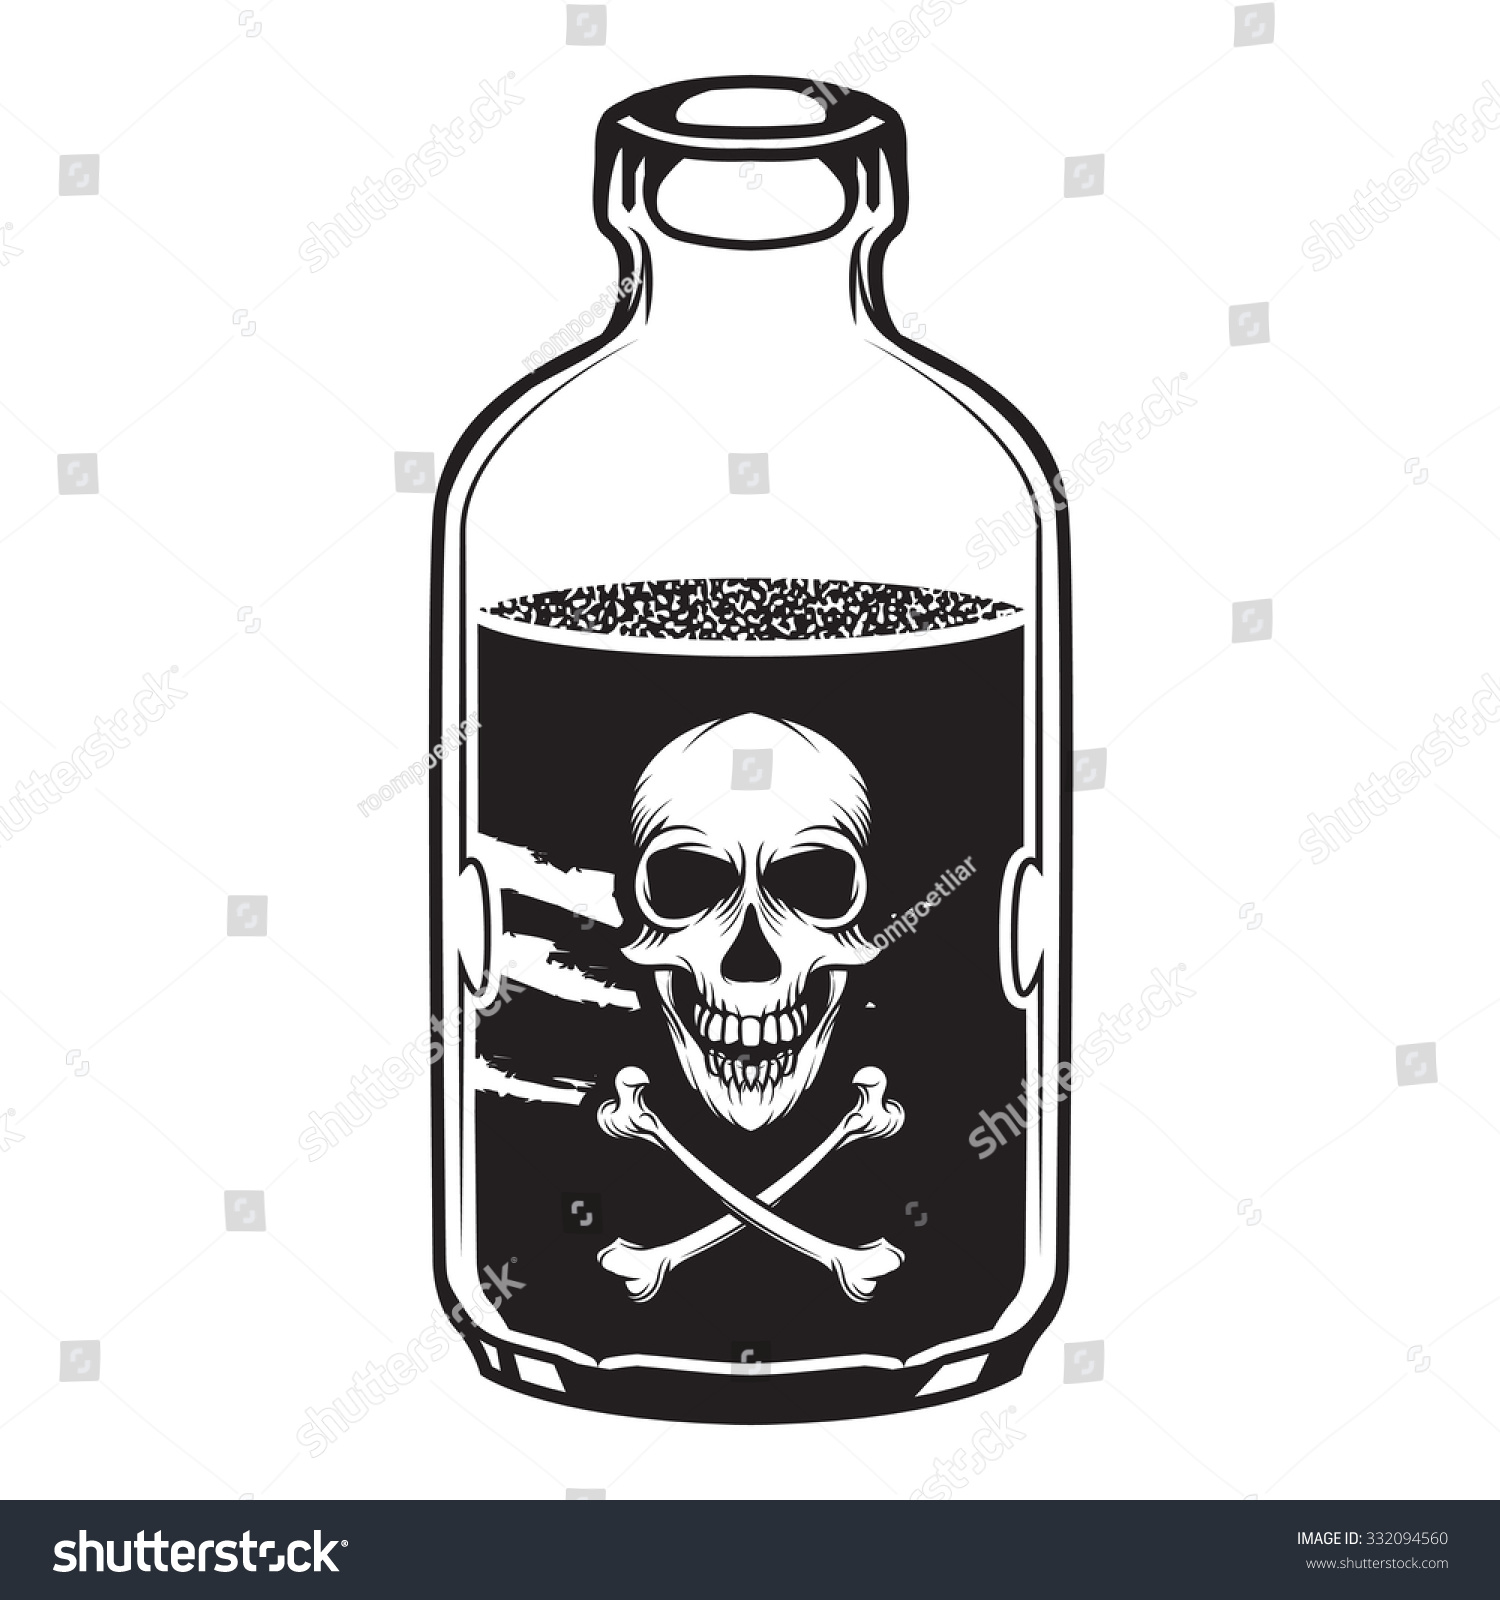 Vintage Vector Poison Bottle Skull Label Stock Vector ...